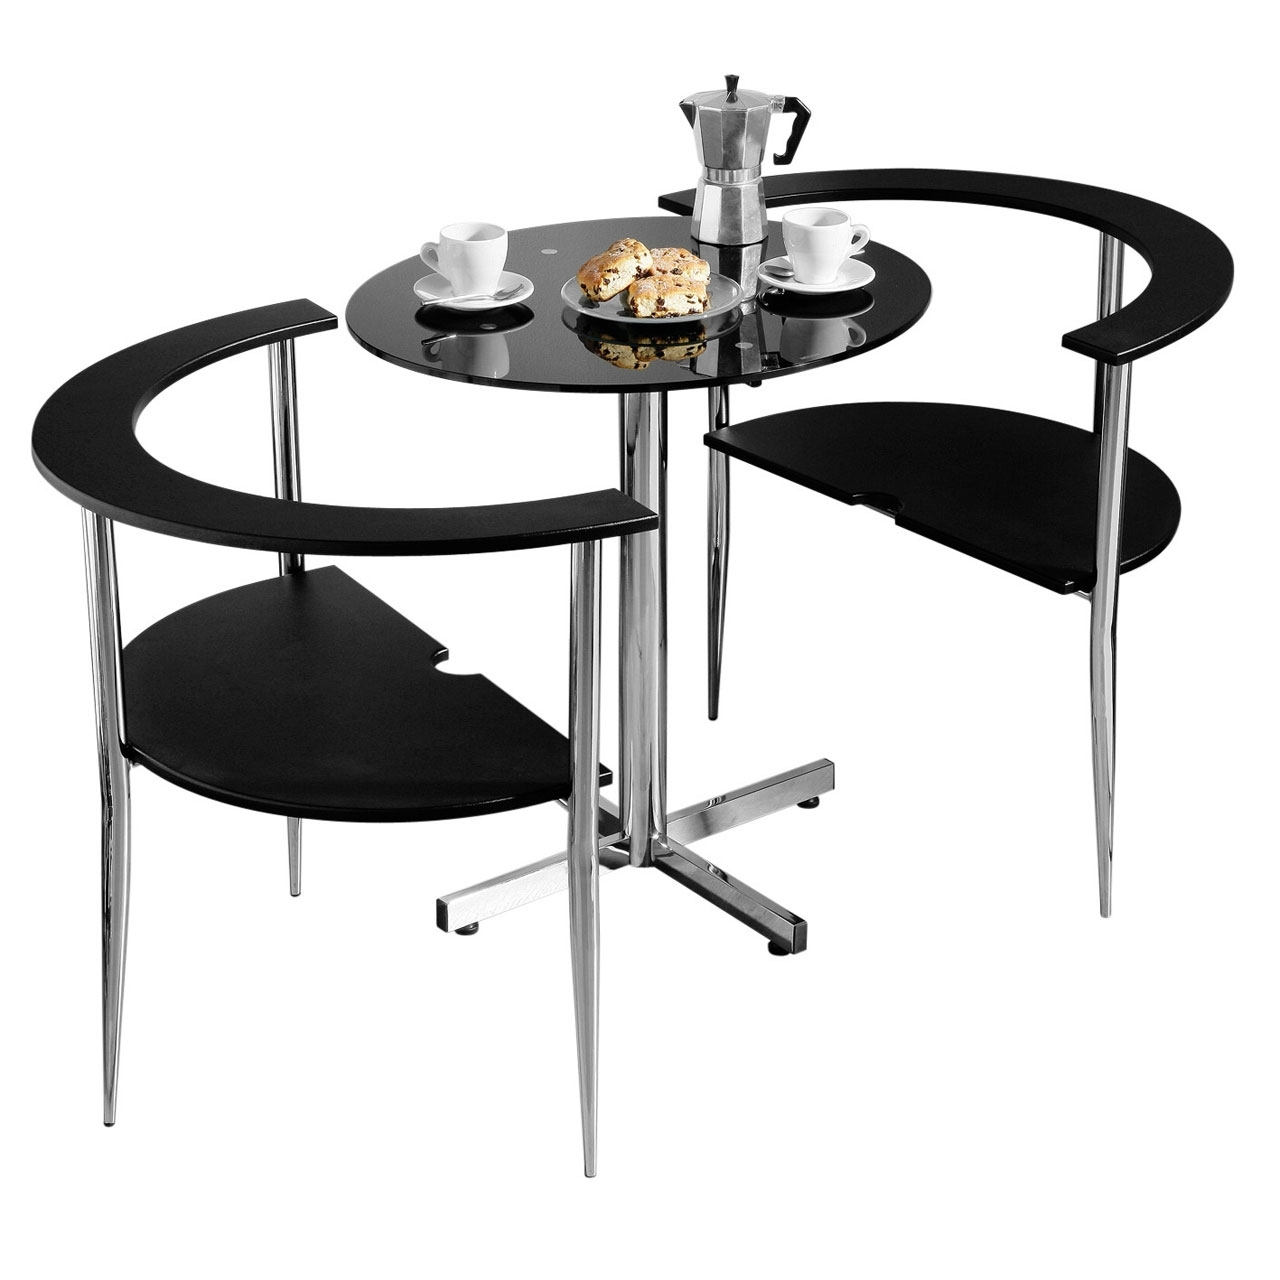 Small Dining Tables For 2 With Favorite 3Pc Round Love Dining Set Black Tempered Glass Table Top 2 Chairs (View 20 of 25)